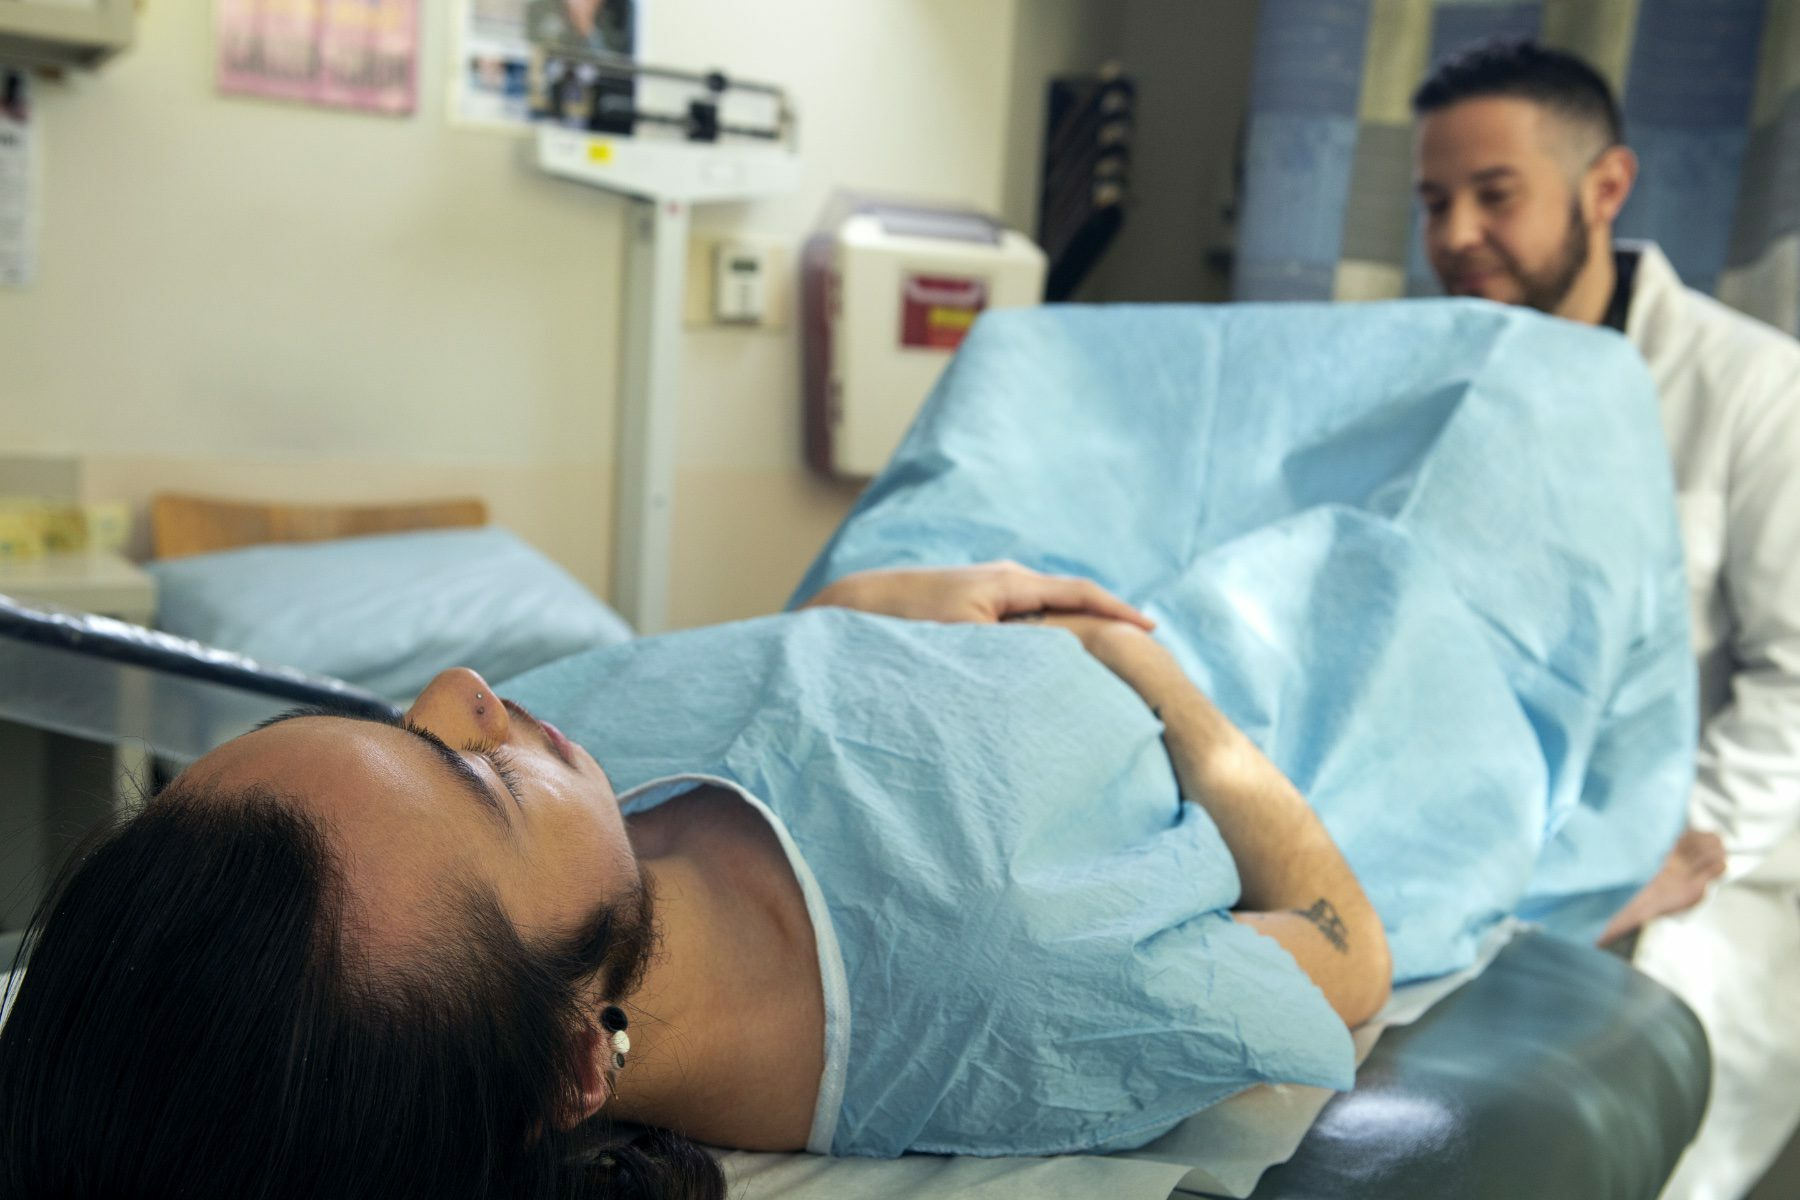 A genderqueer person in a hospital gown receiving a pelvic exam.